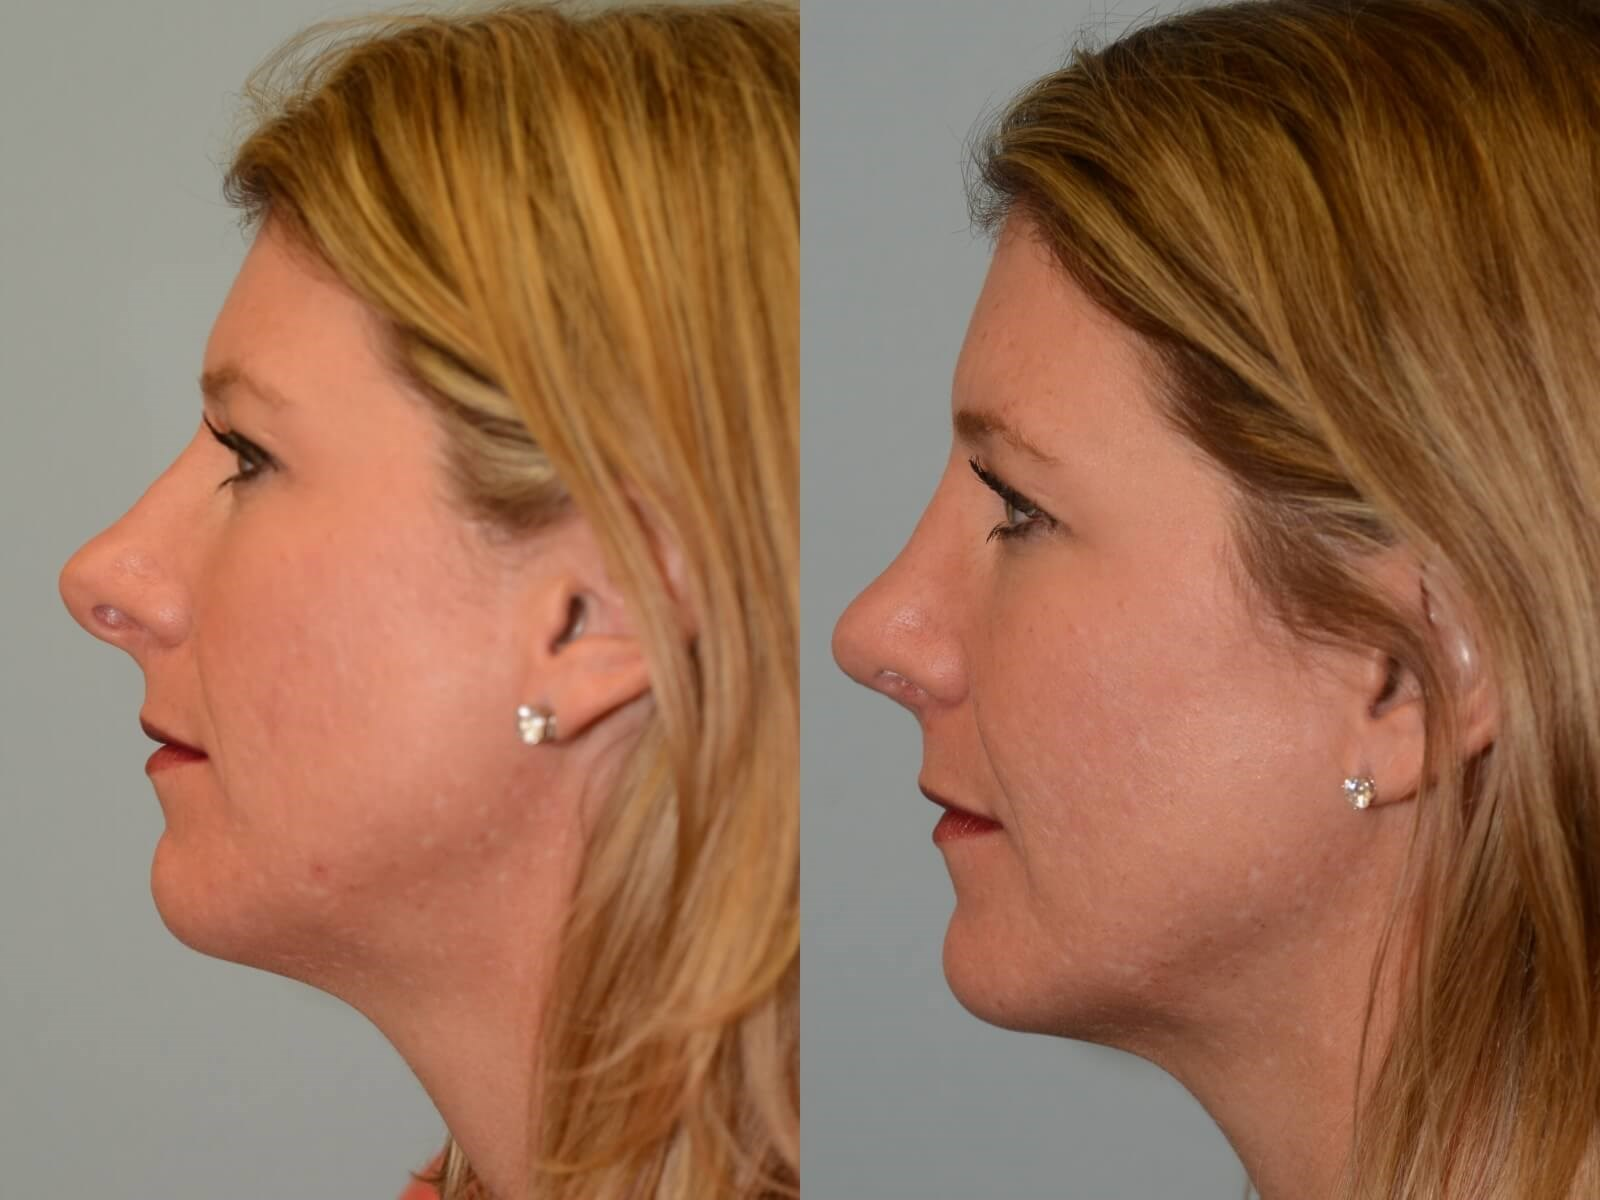 Rhinoplasty Before and After 6 months